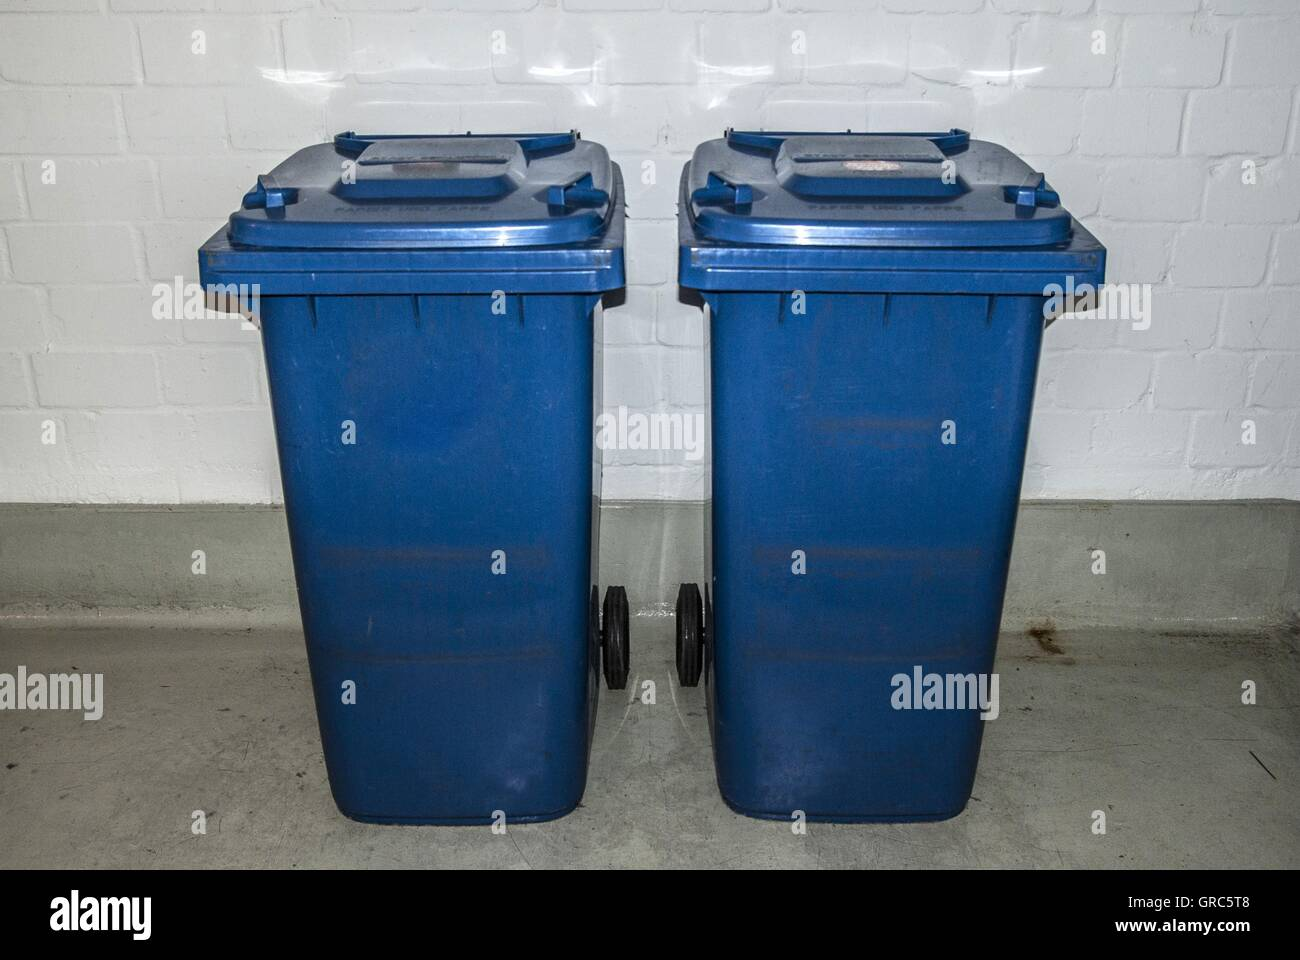 Building, Cellar, Trash Cans - Stock Image